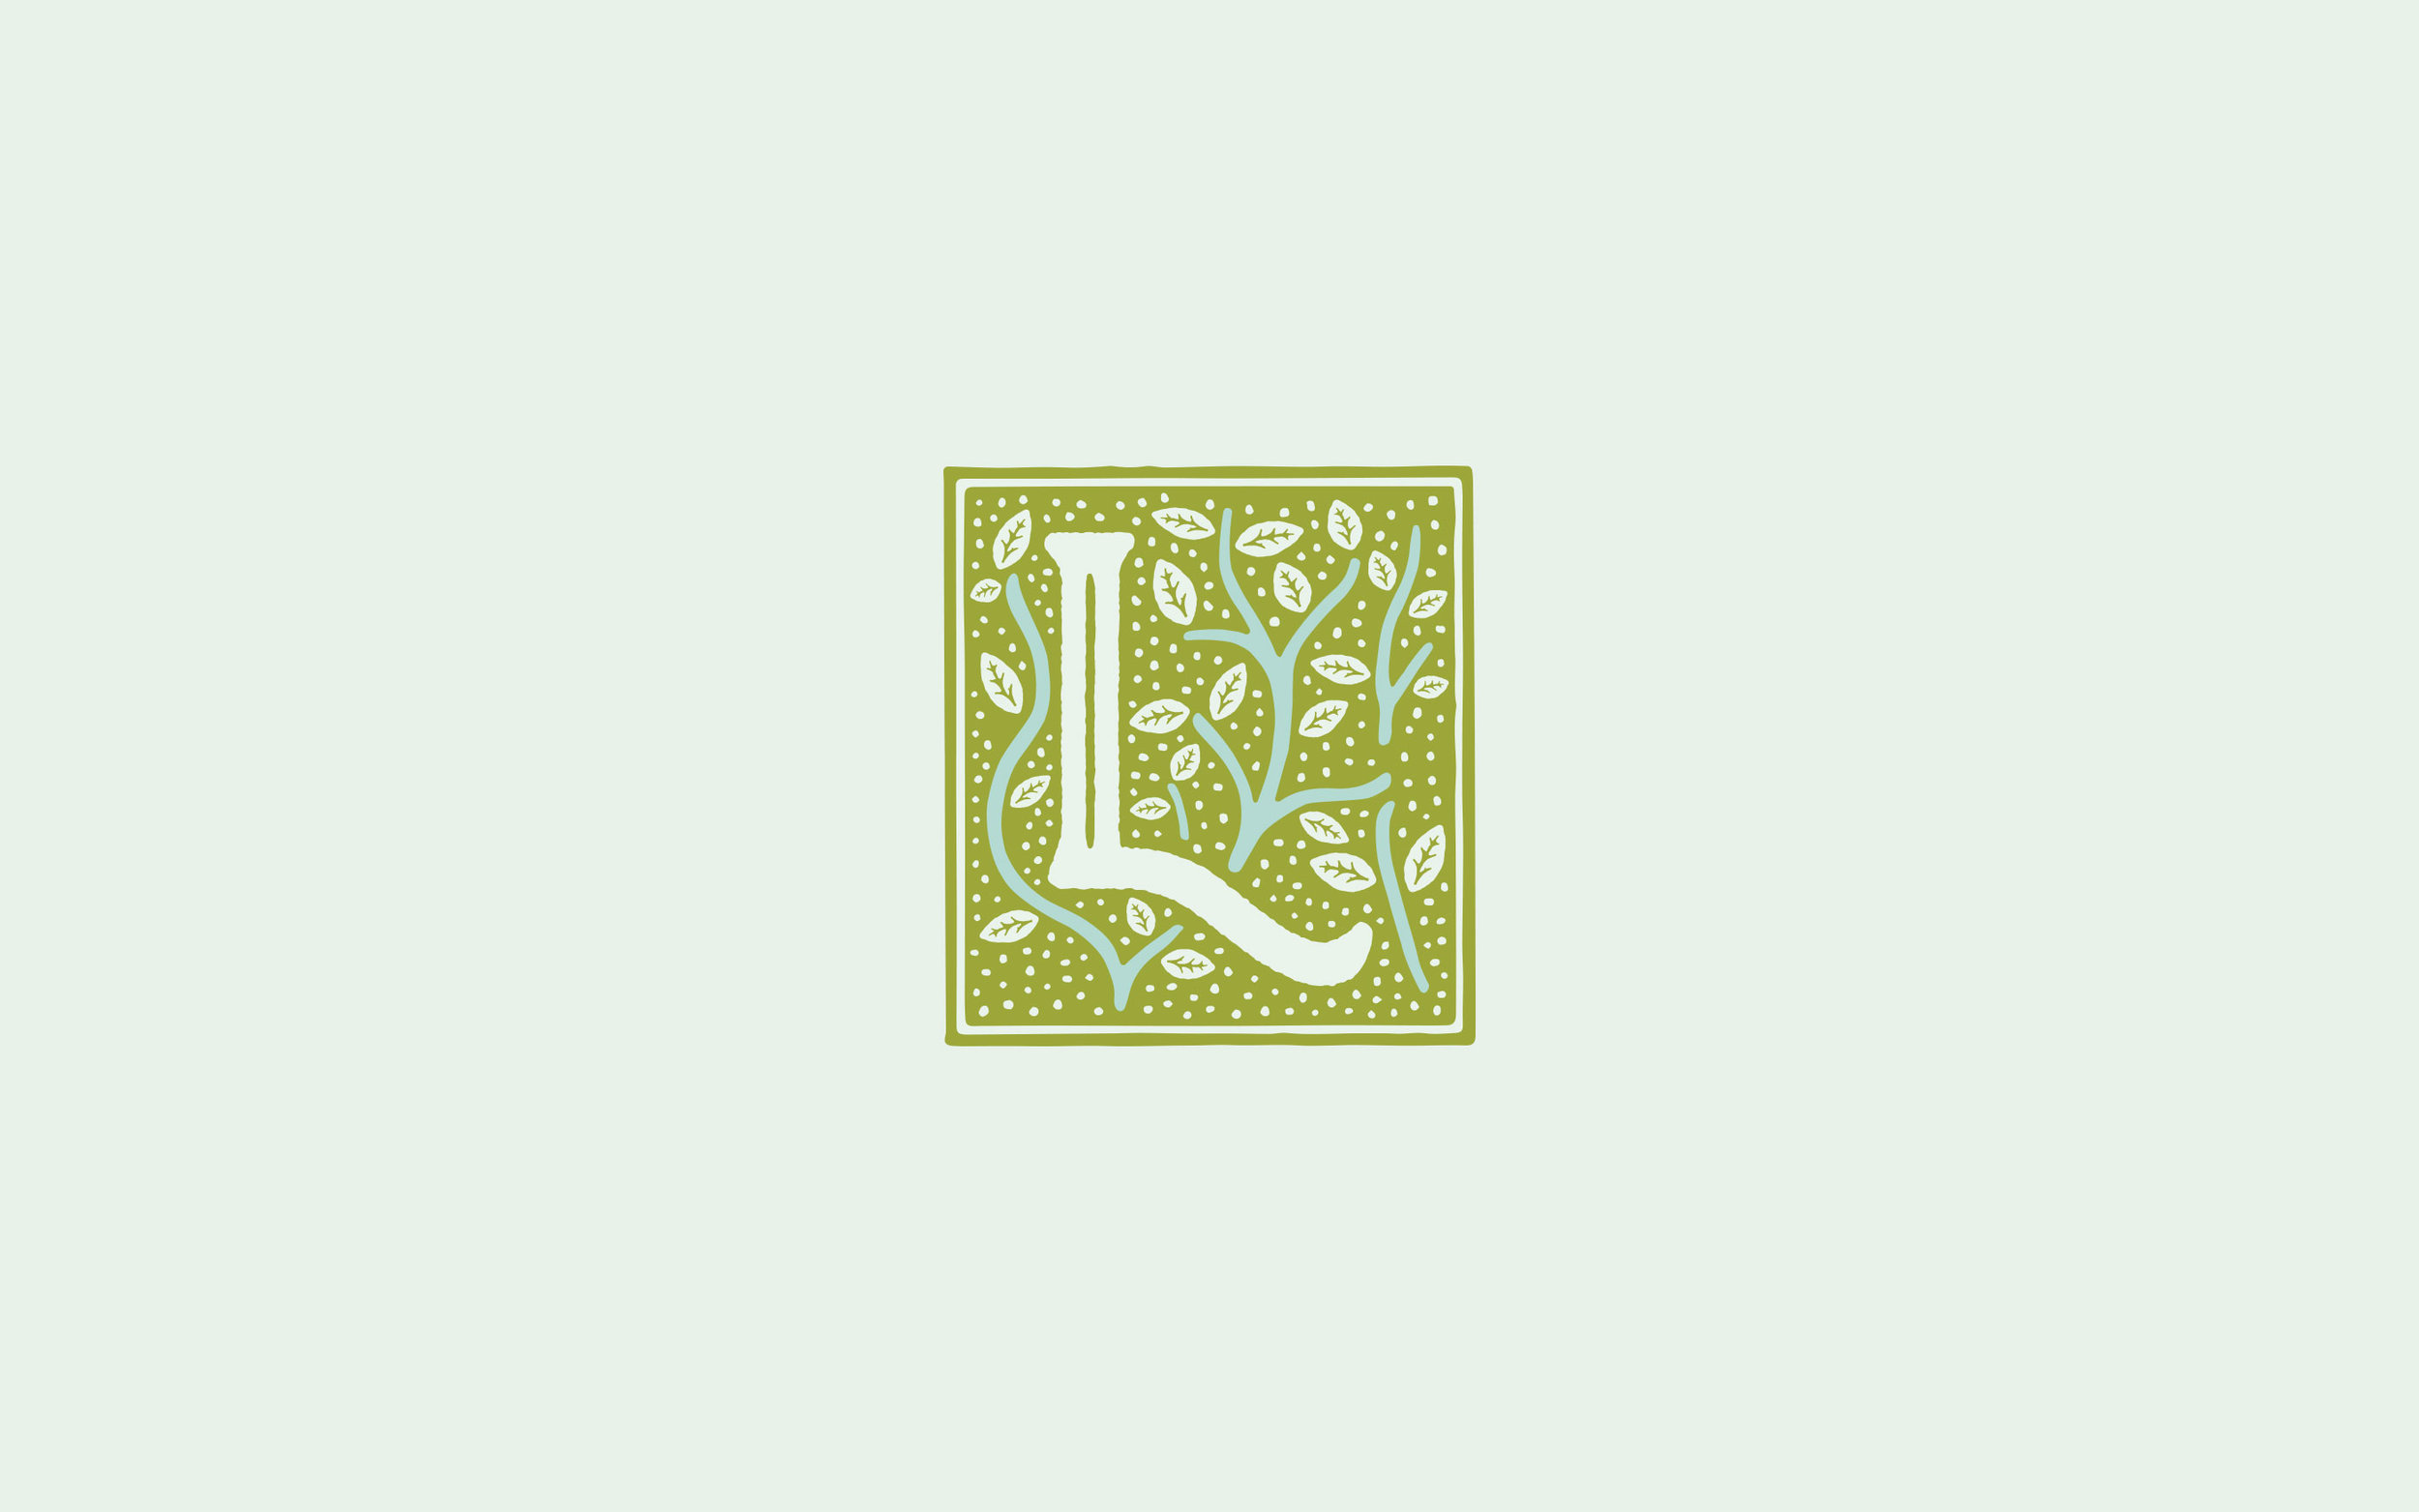 Leaves Book & Tea Shop - Visual Identity